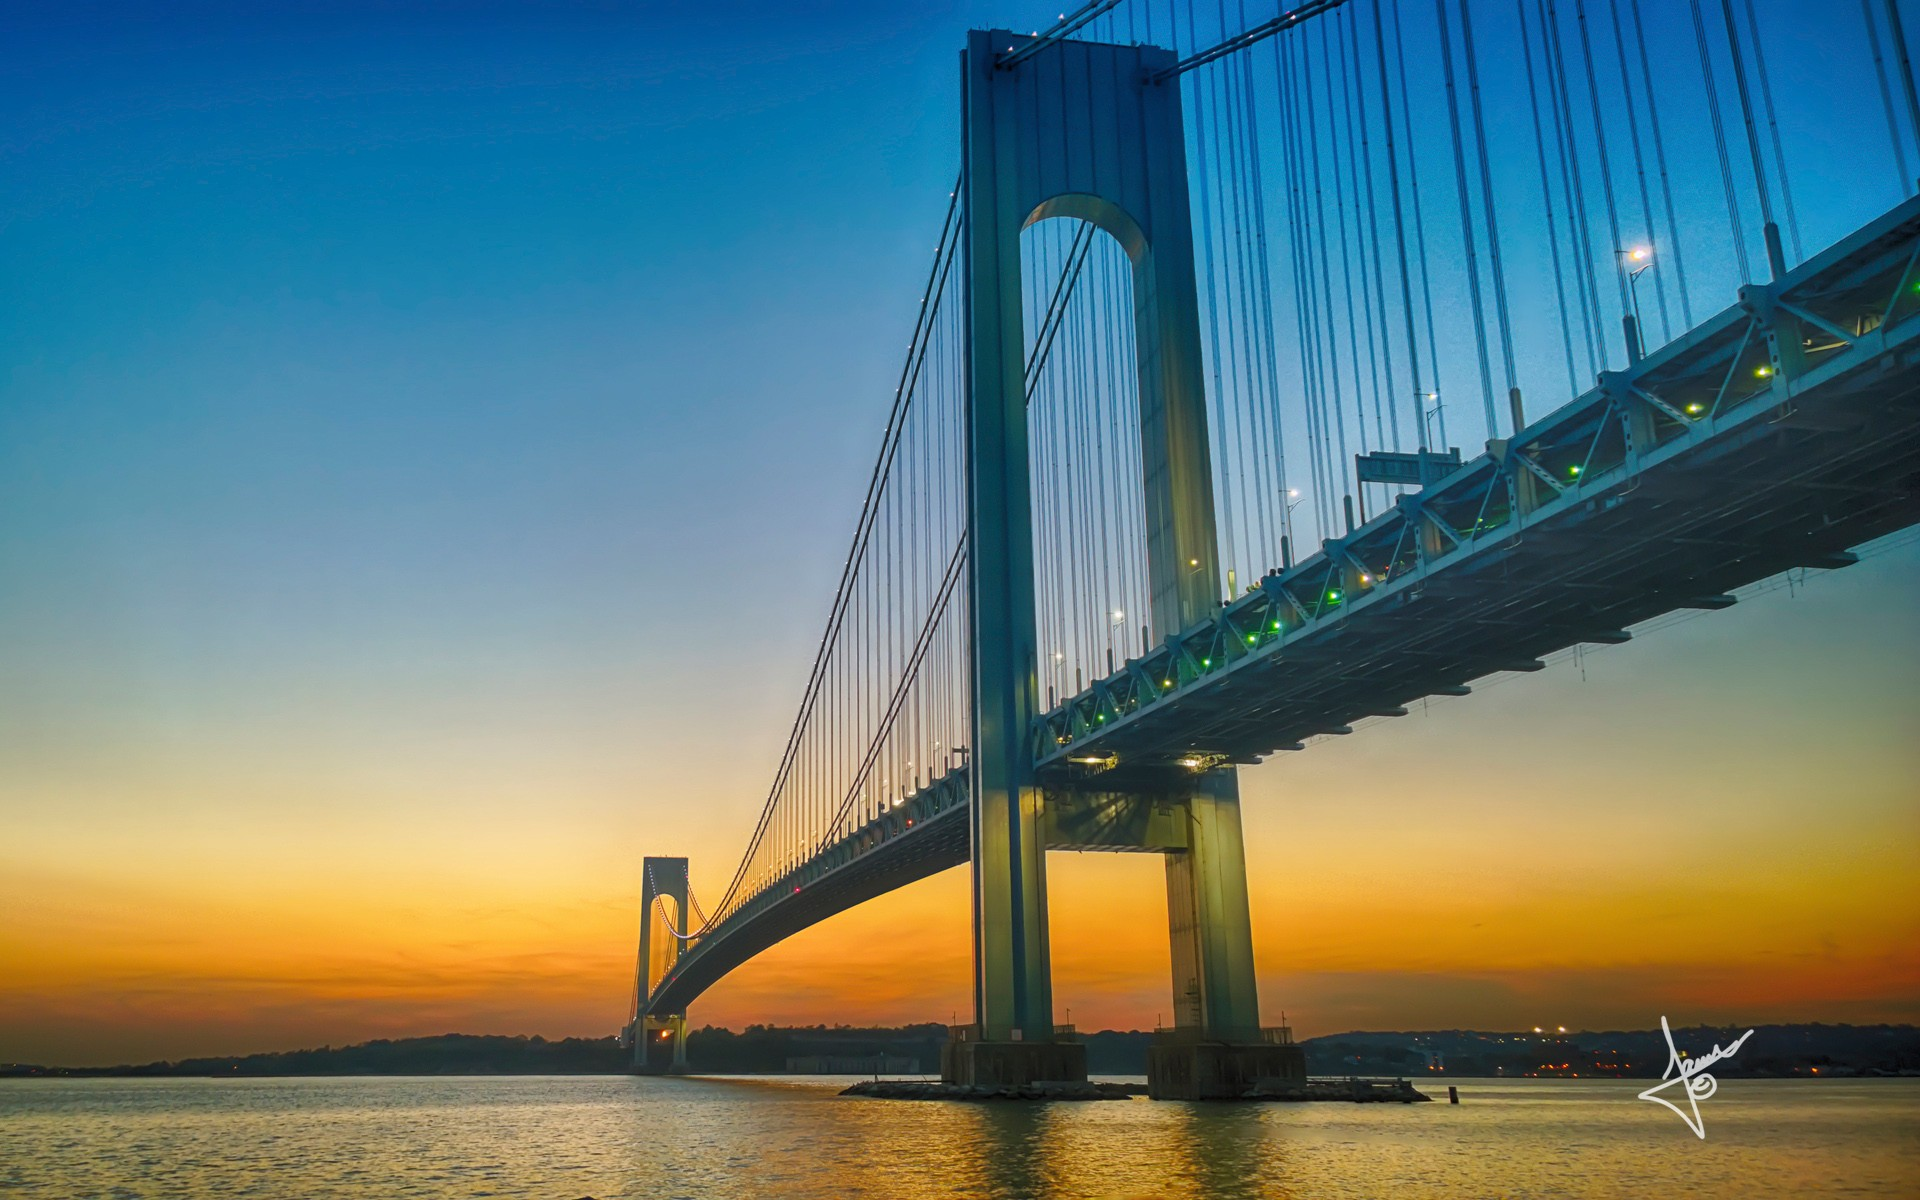 Cute Phone Wallpaper Download Verrazano Narrows Bridge Wallpapers Hd Wallpapers Id